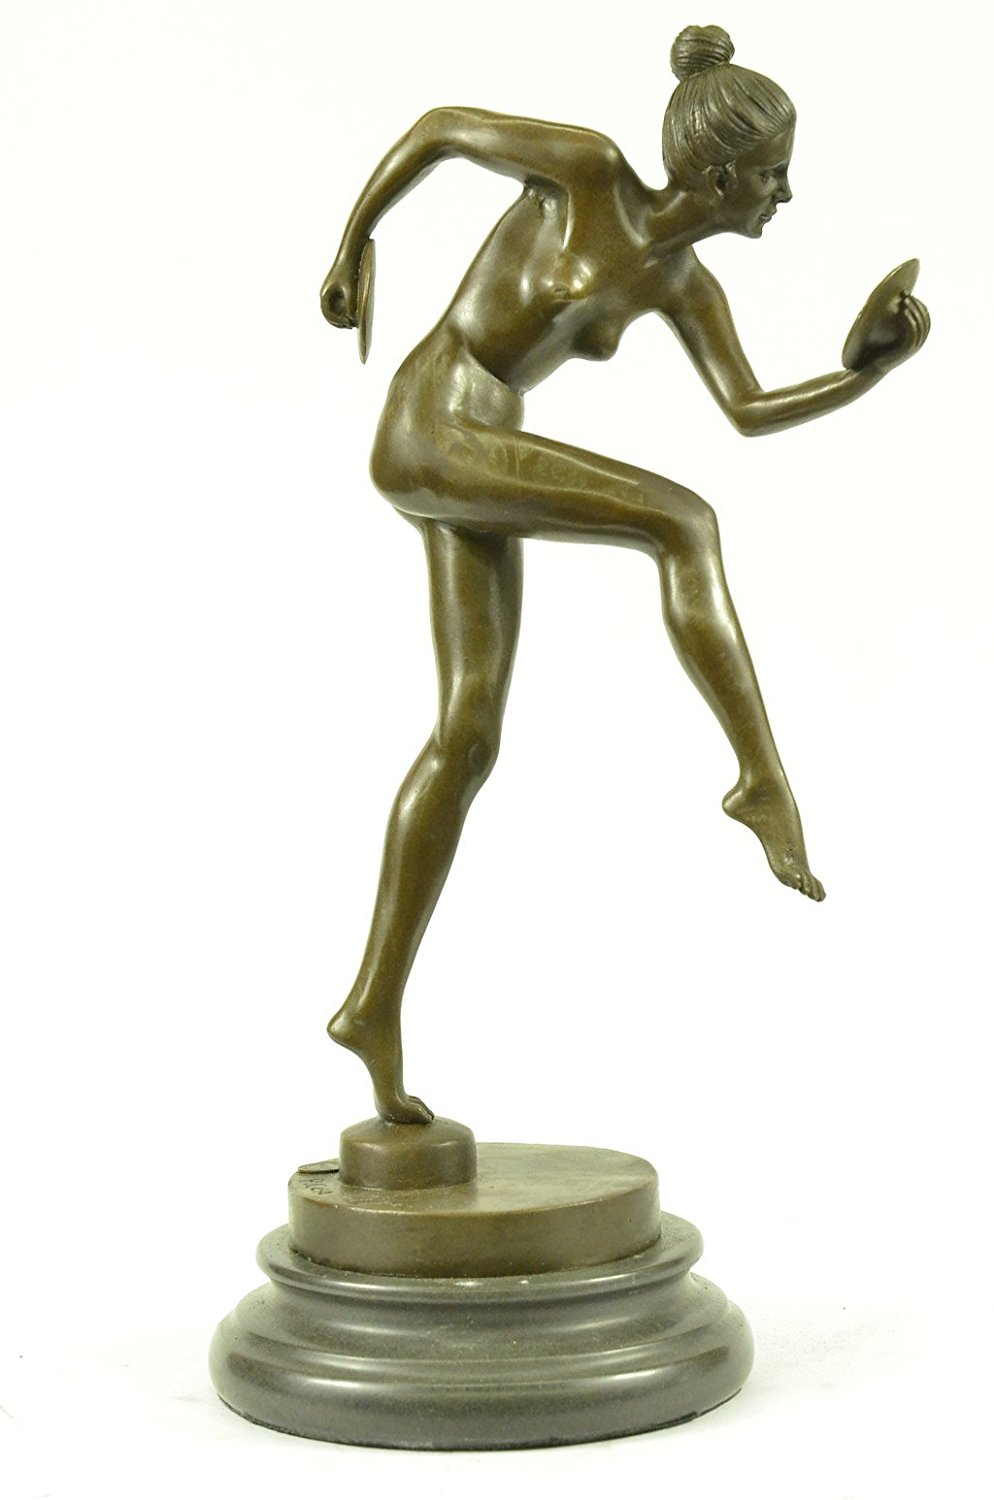 ...Handmade...European Bronze Sculpture Signed Nude Girl Dancing Marble (1X-DS-170) Bronze Sculpture Statues Figurine Nude Office & Home Décor Collectibles Sale Deal Gifts